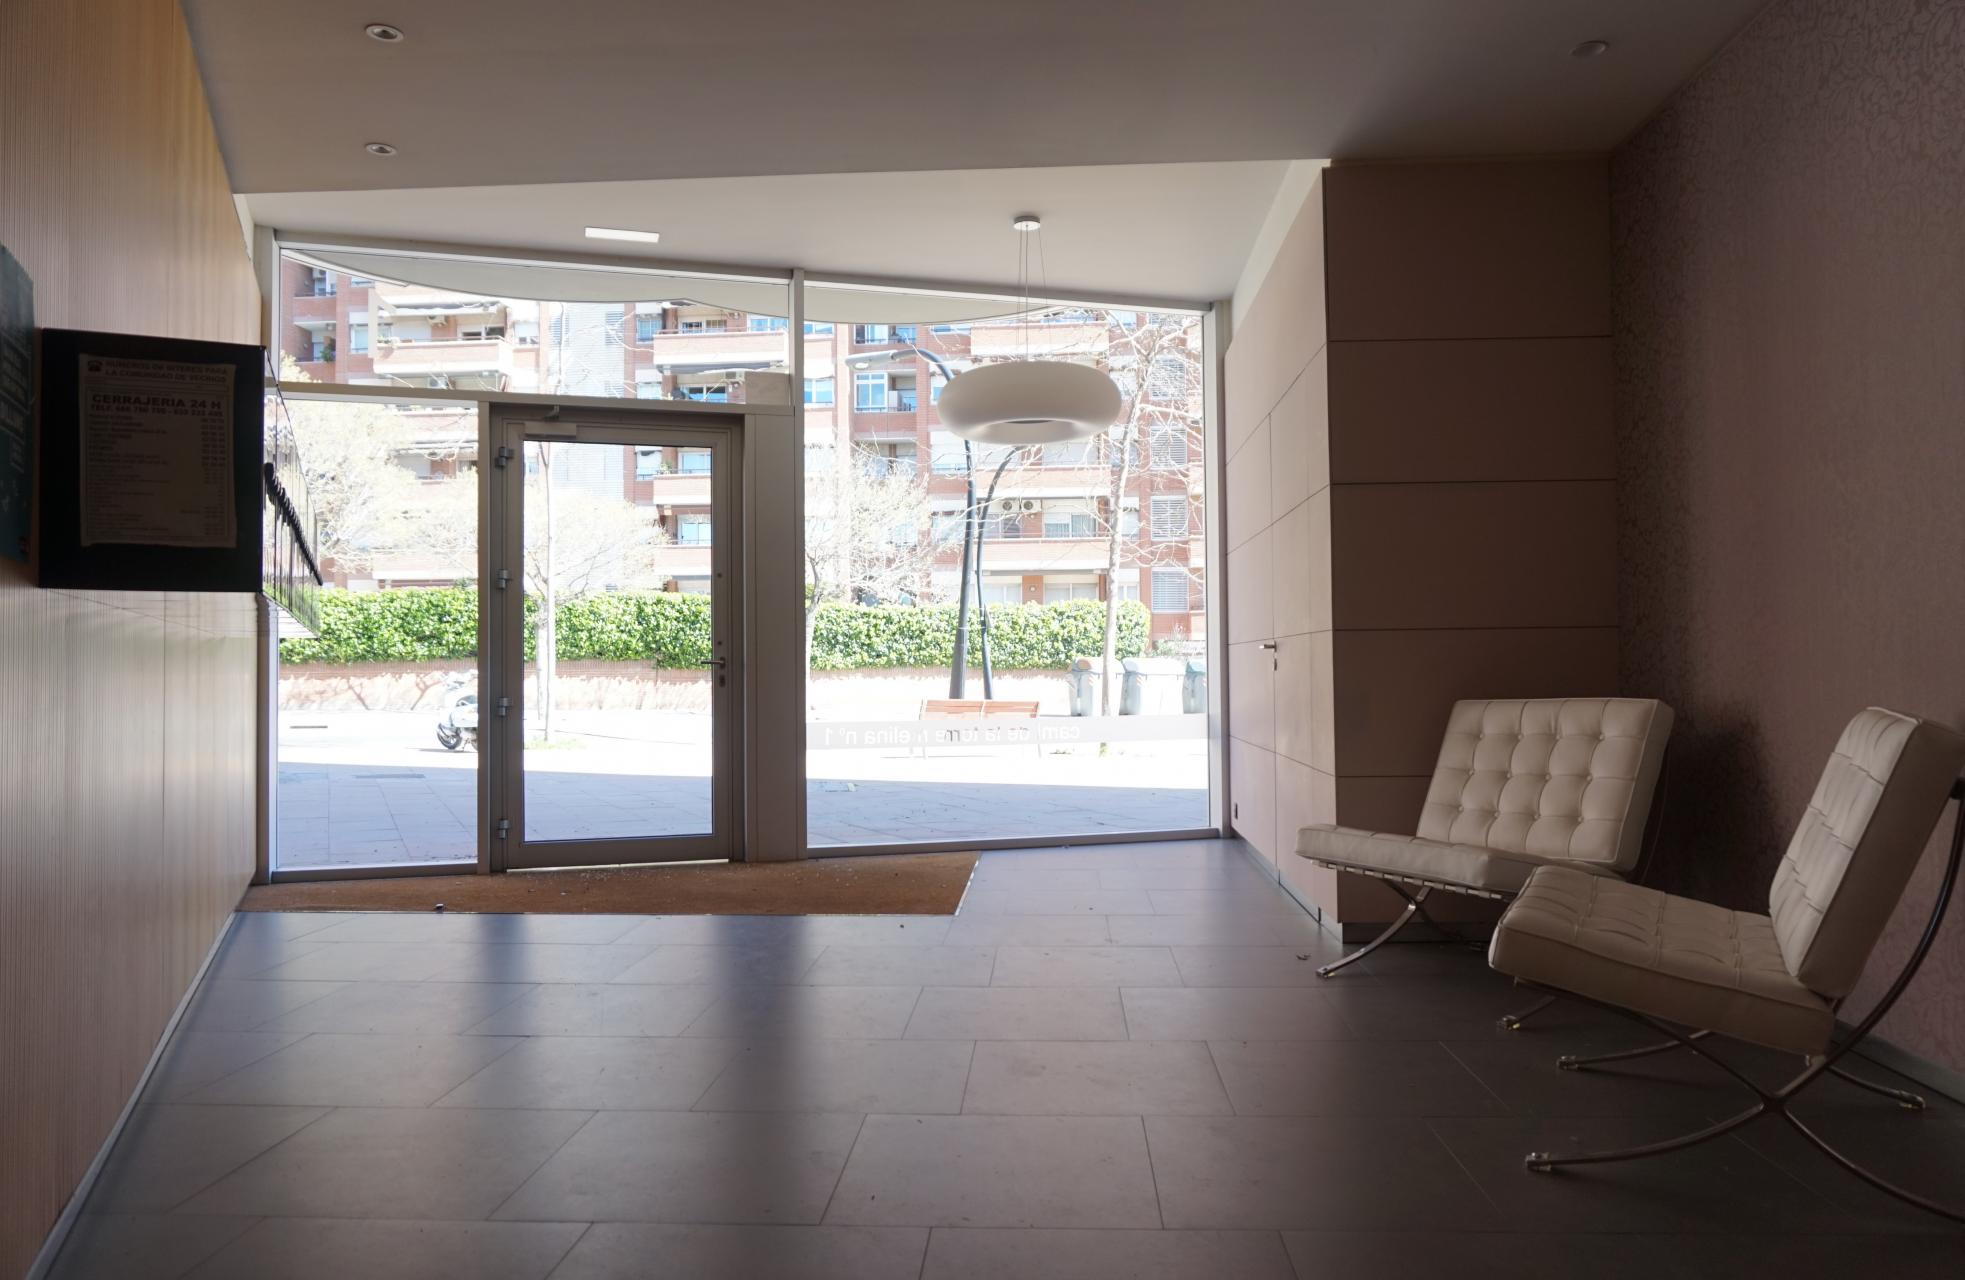 Piso en alquiler barcelona les corts cam torre melina for Piso alquiler les corts